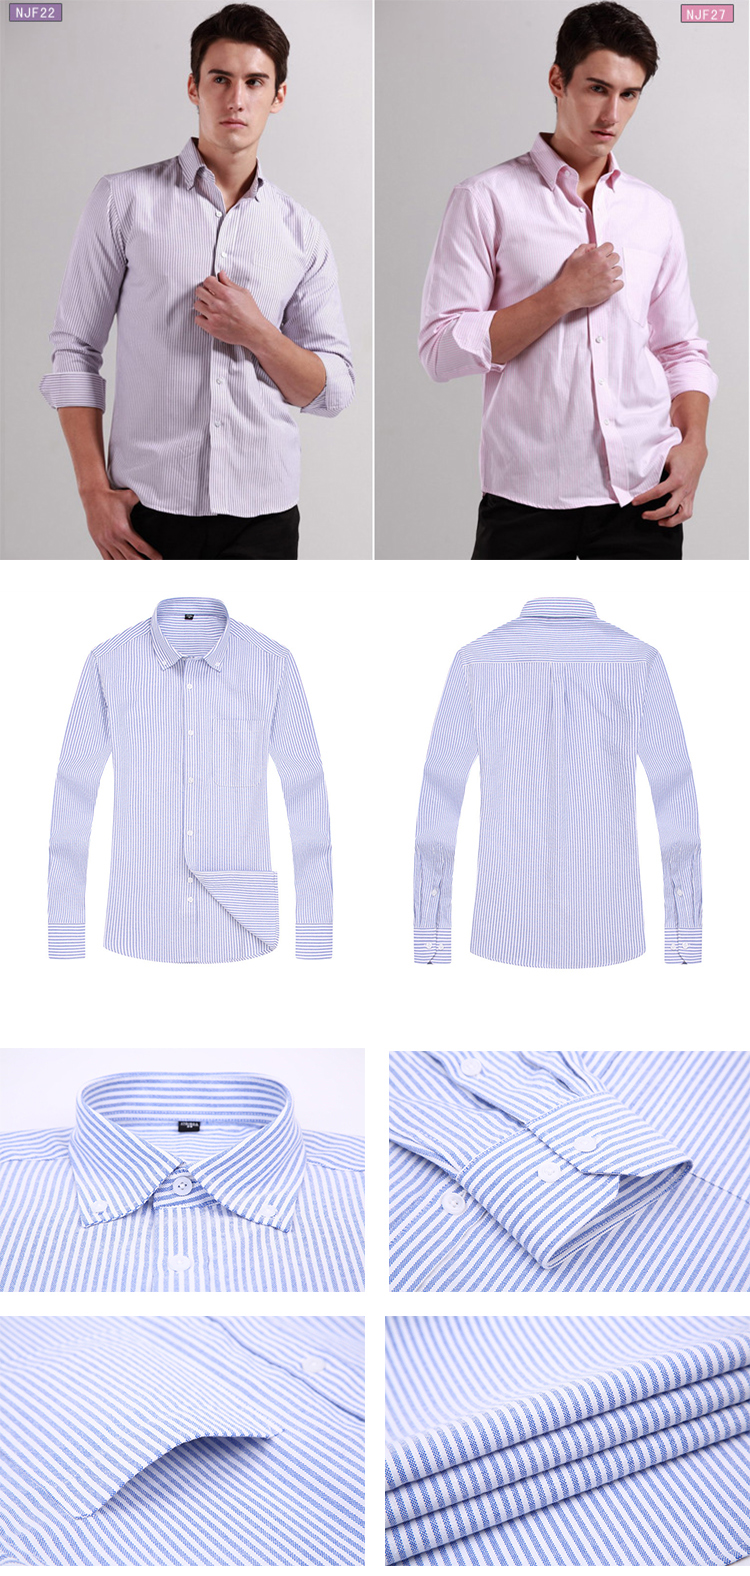 A1NJF Men's Striped Oxford Spinning Casual Long Sleeve Shirt Comfortable breathable Collar Button Design 2019 Spring Autumn New